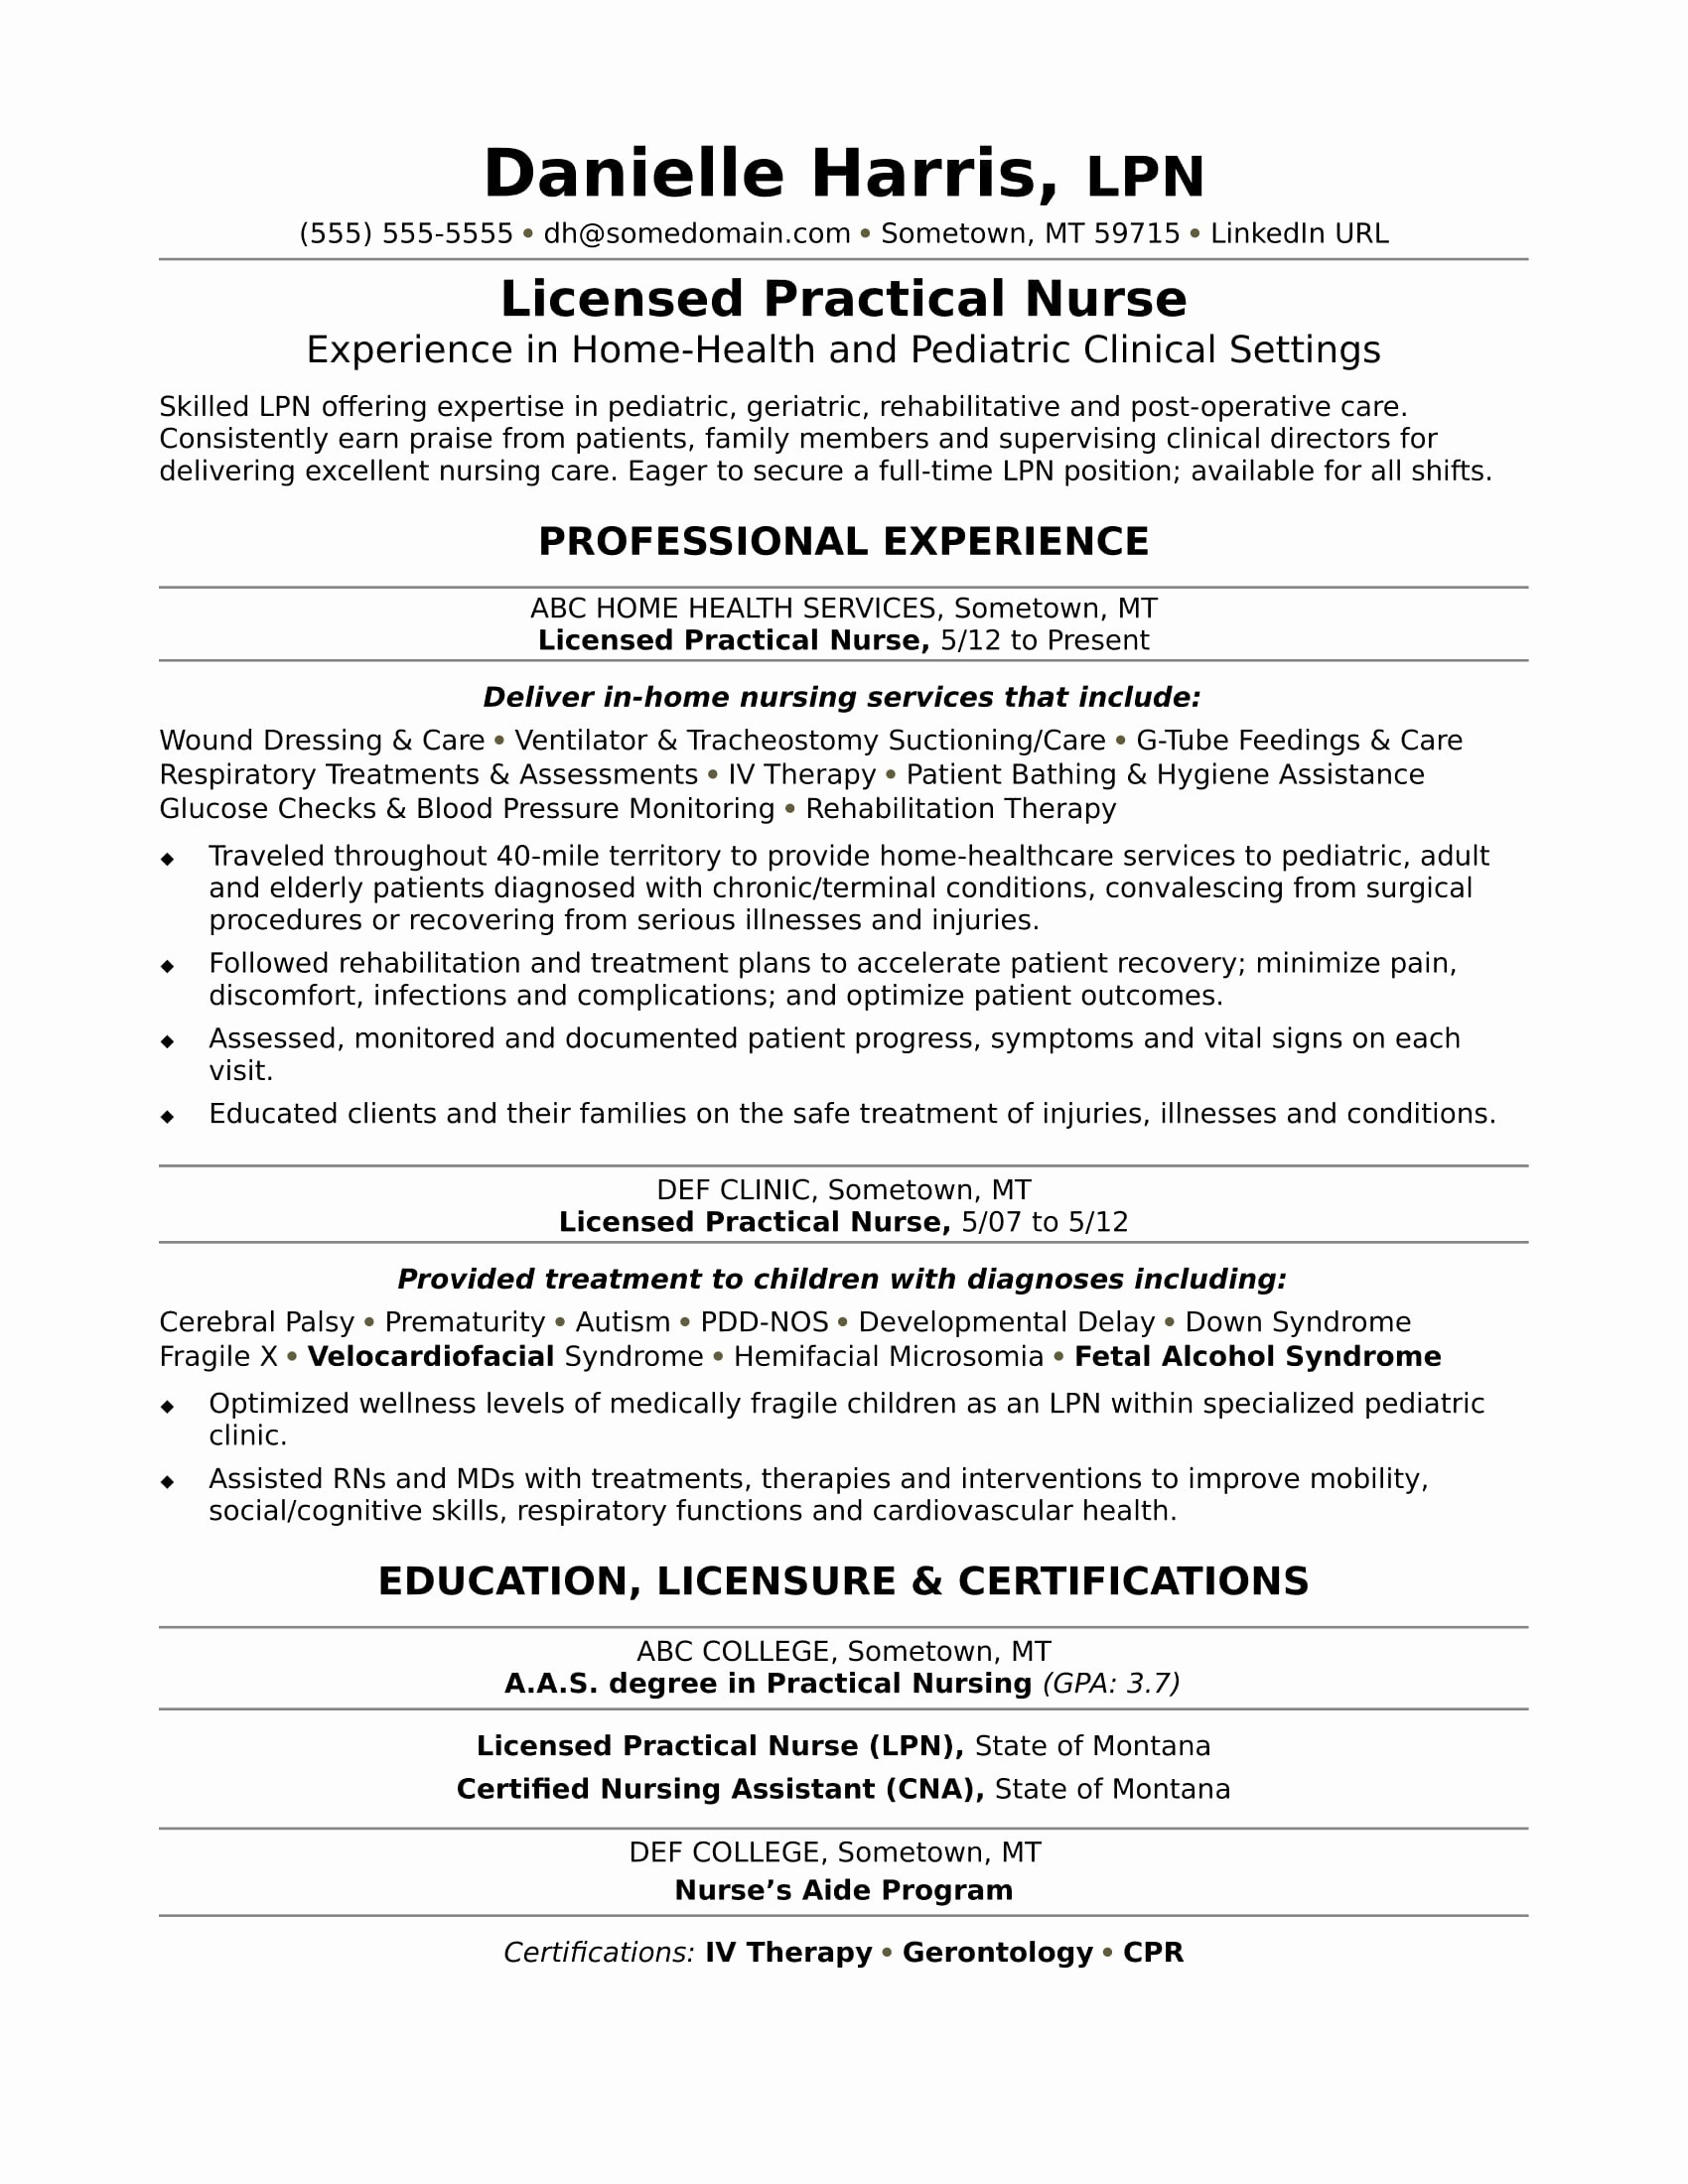 Rn Resume Examples - Rn Resume Examples Best Elegant New Nurse Resume Awesome Nurse